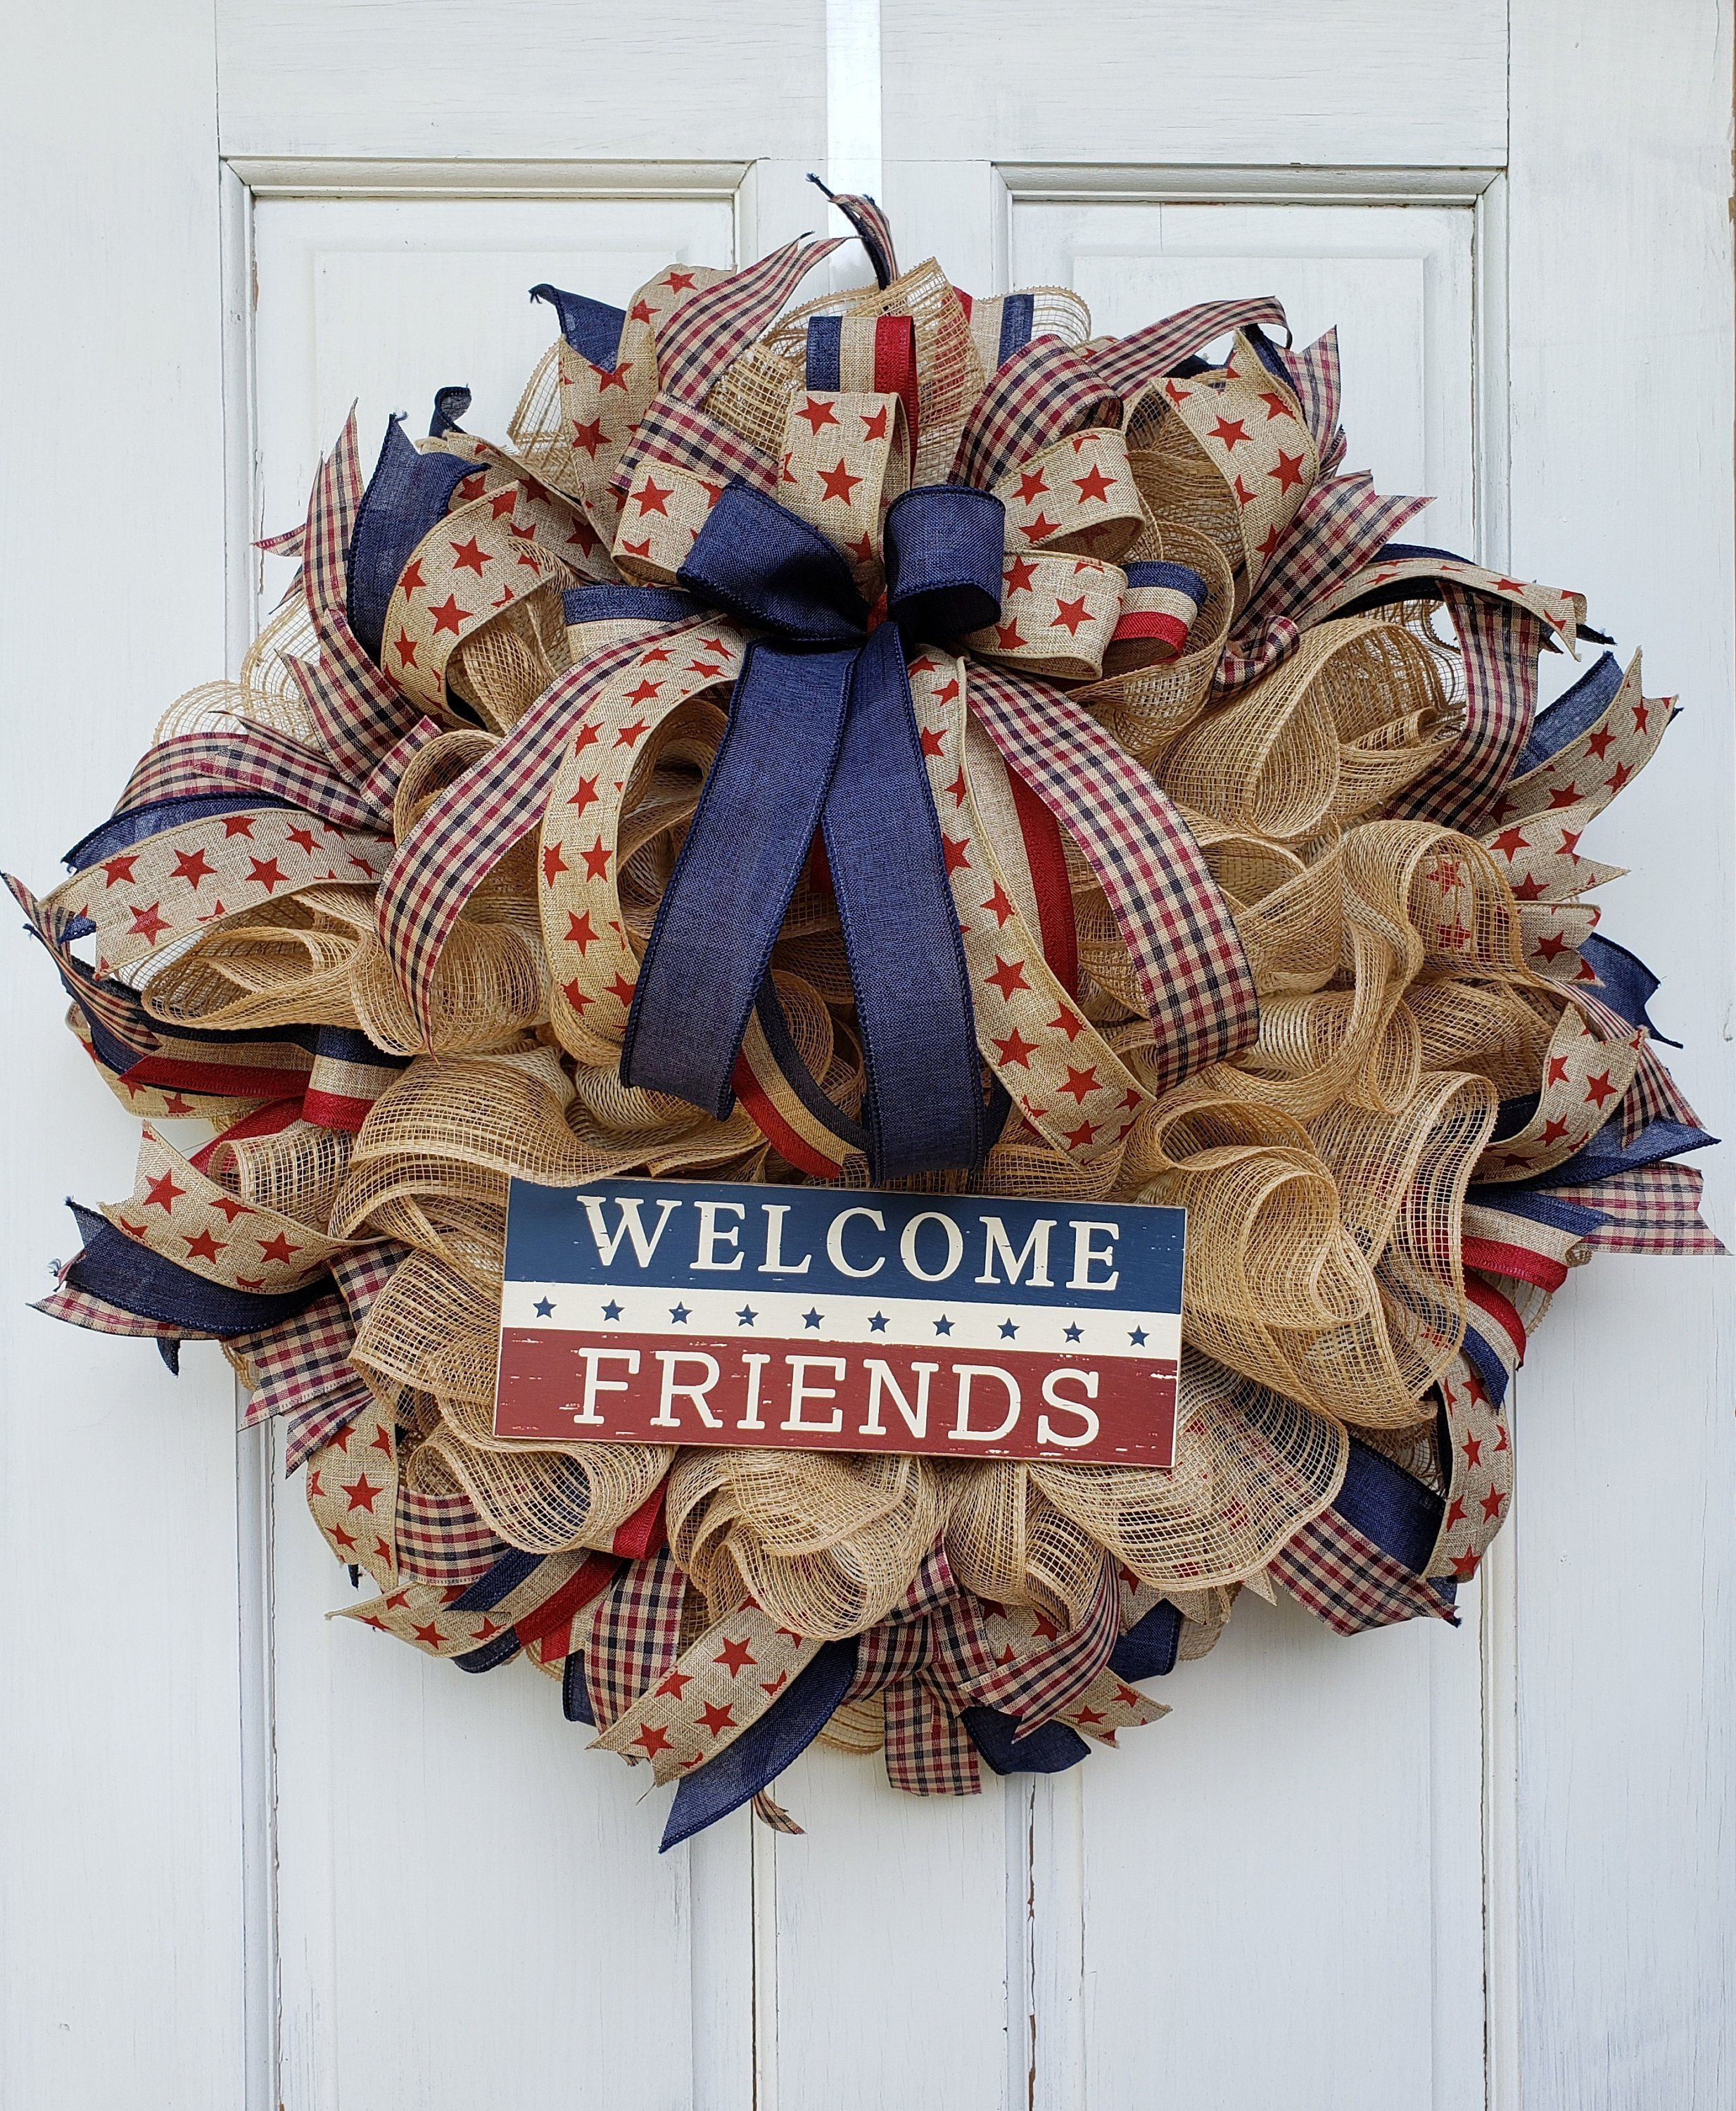 Christmas In July Entrada 2020 Pin by Nele Barlow on Door Design in 2020 | 4th of july wreath